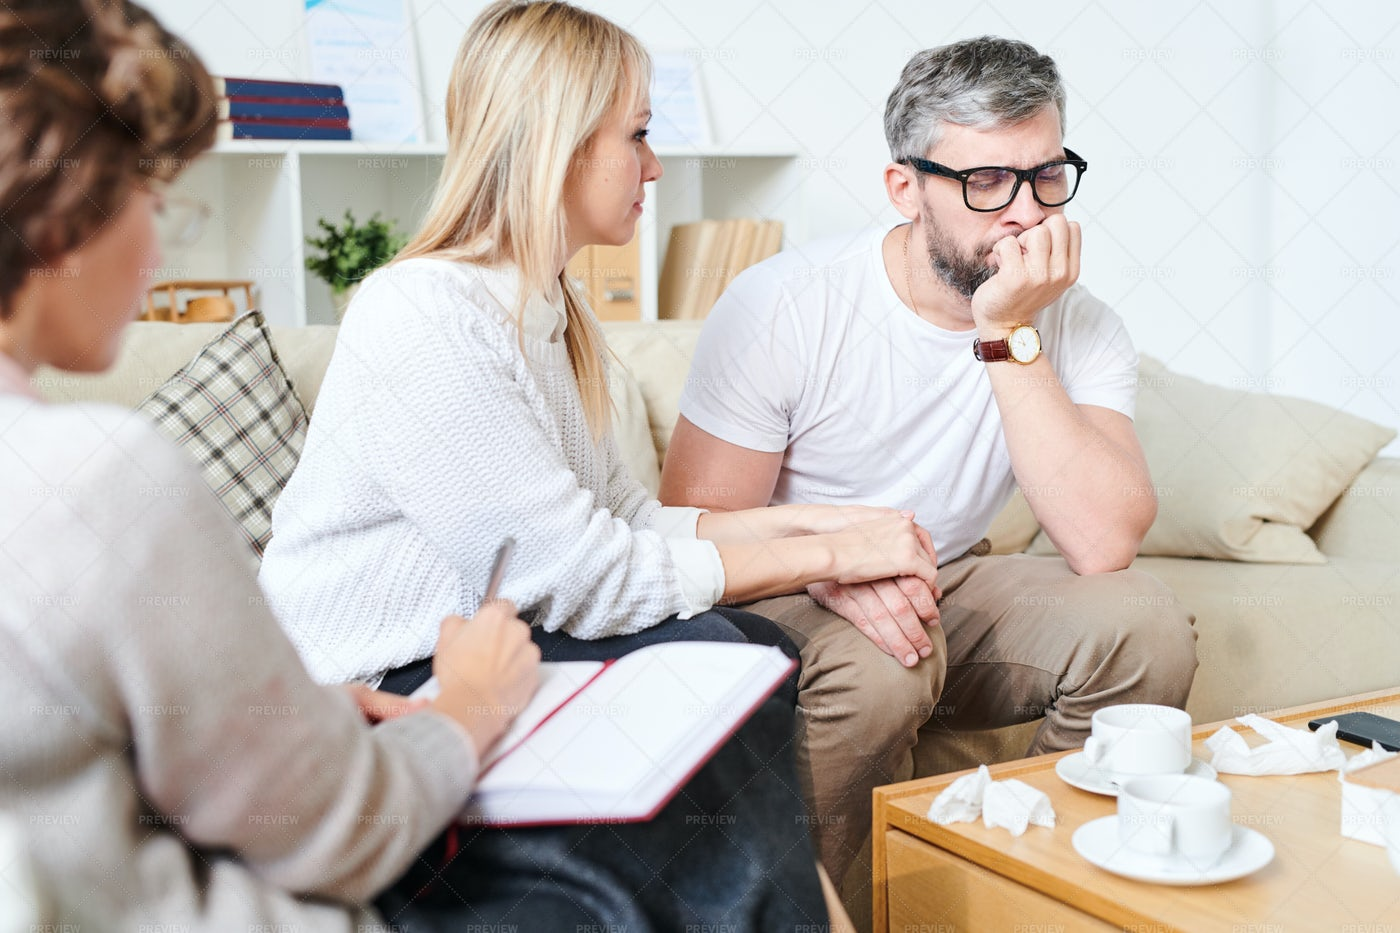 Sad Husband Supported By Wife...: Stock Photos